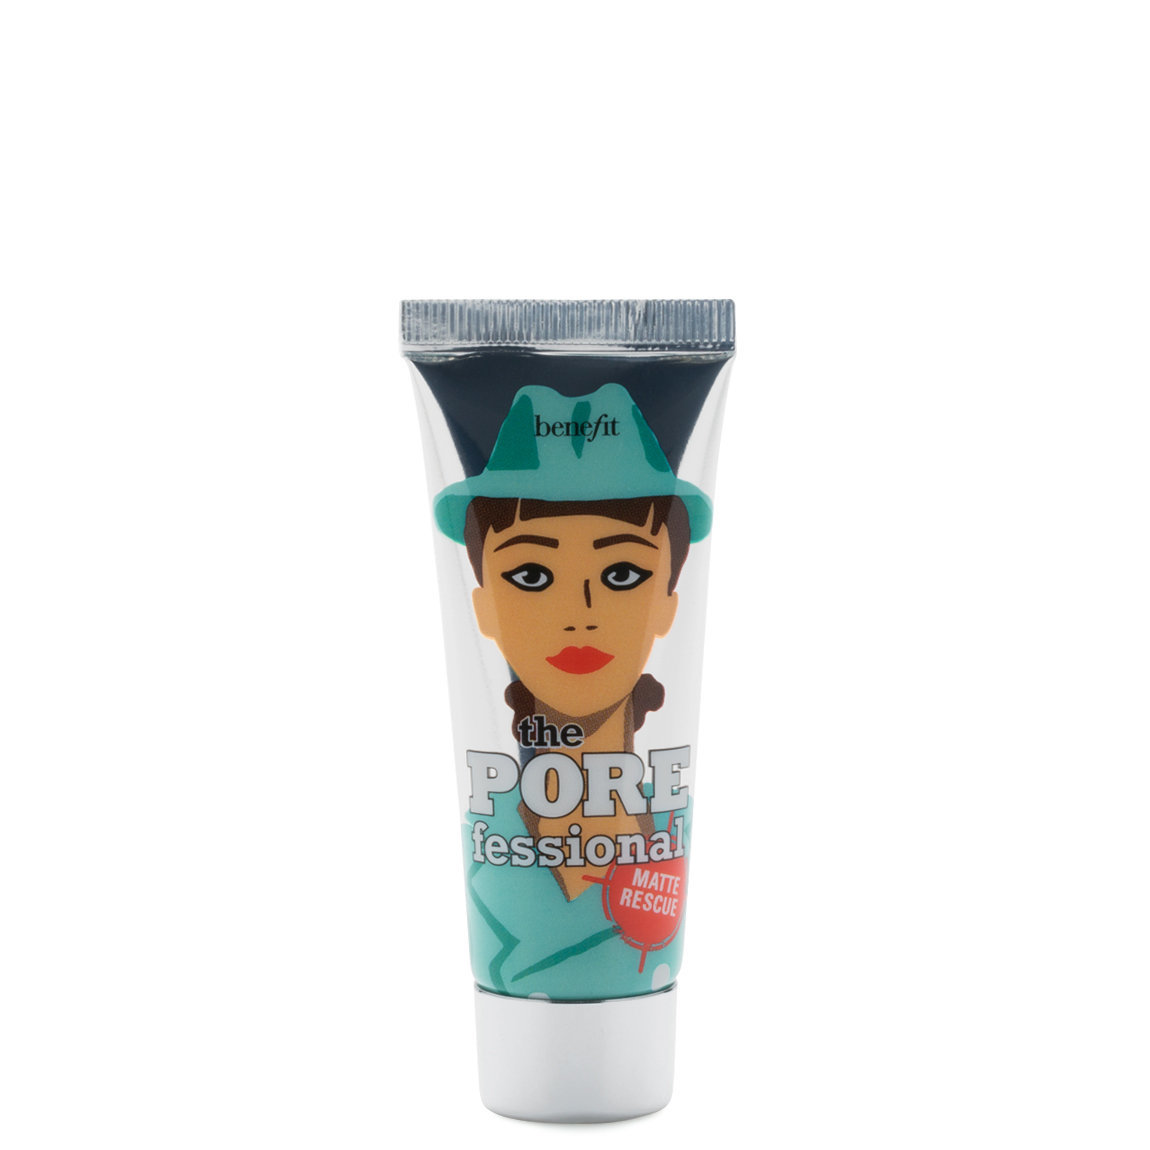 Benefit Cosmetics The POREfessional Matte Rescue Gel Mini product smear.